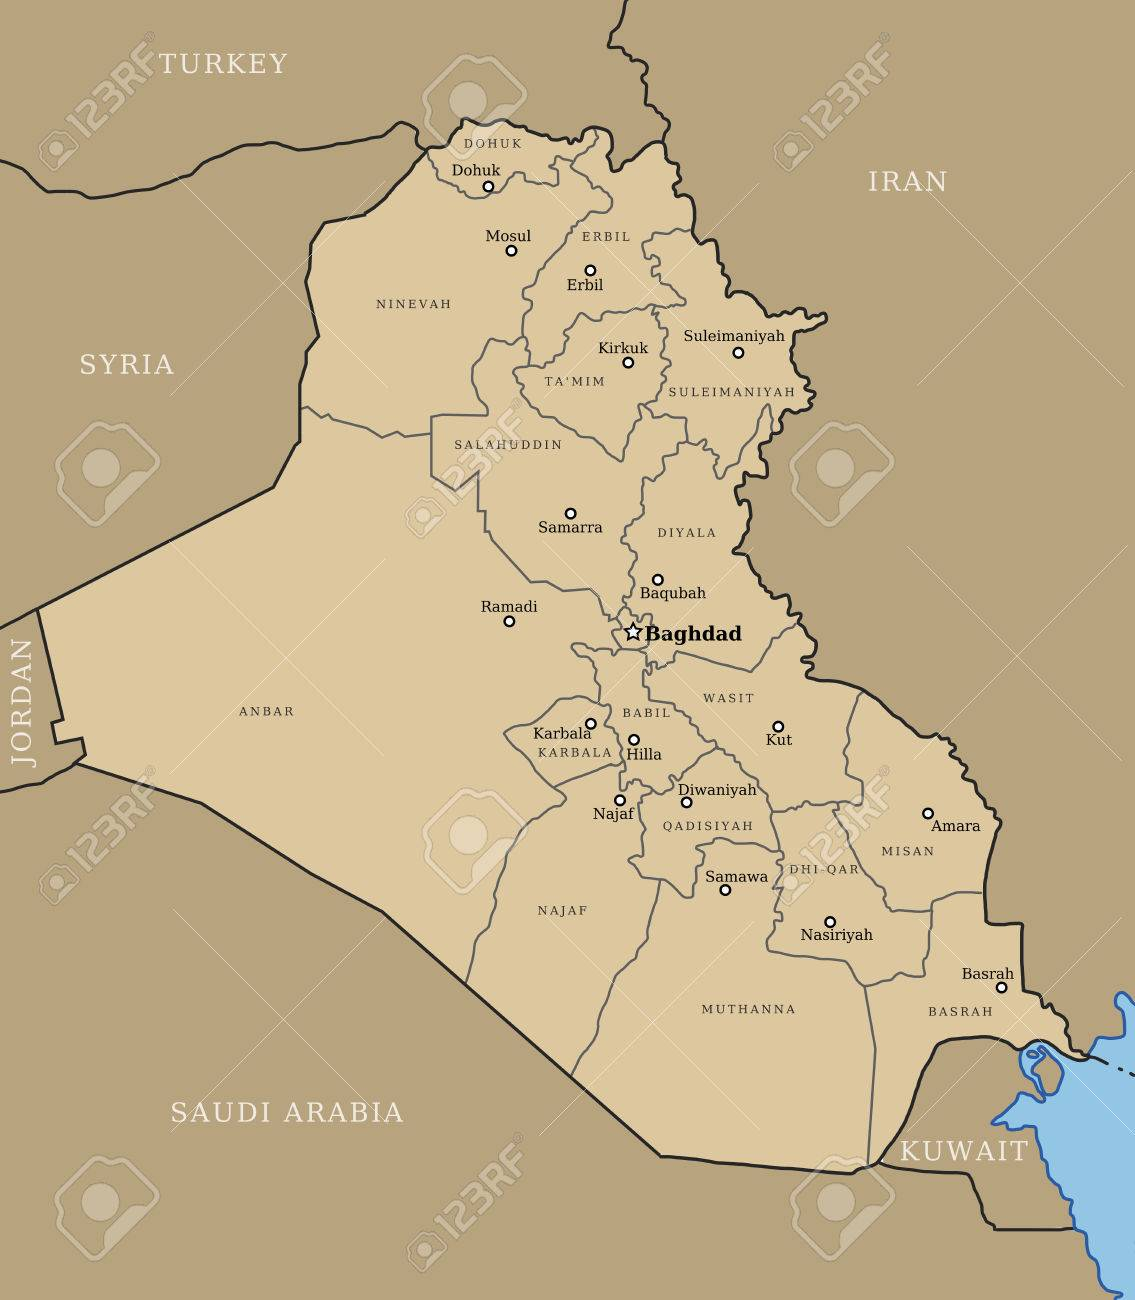 Map Of Iraq With Provinces (governorates) And Major Cities: Baghdad ...